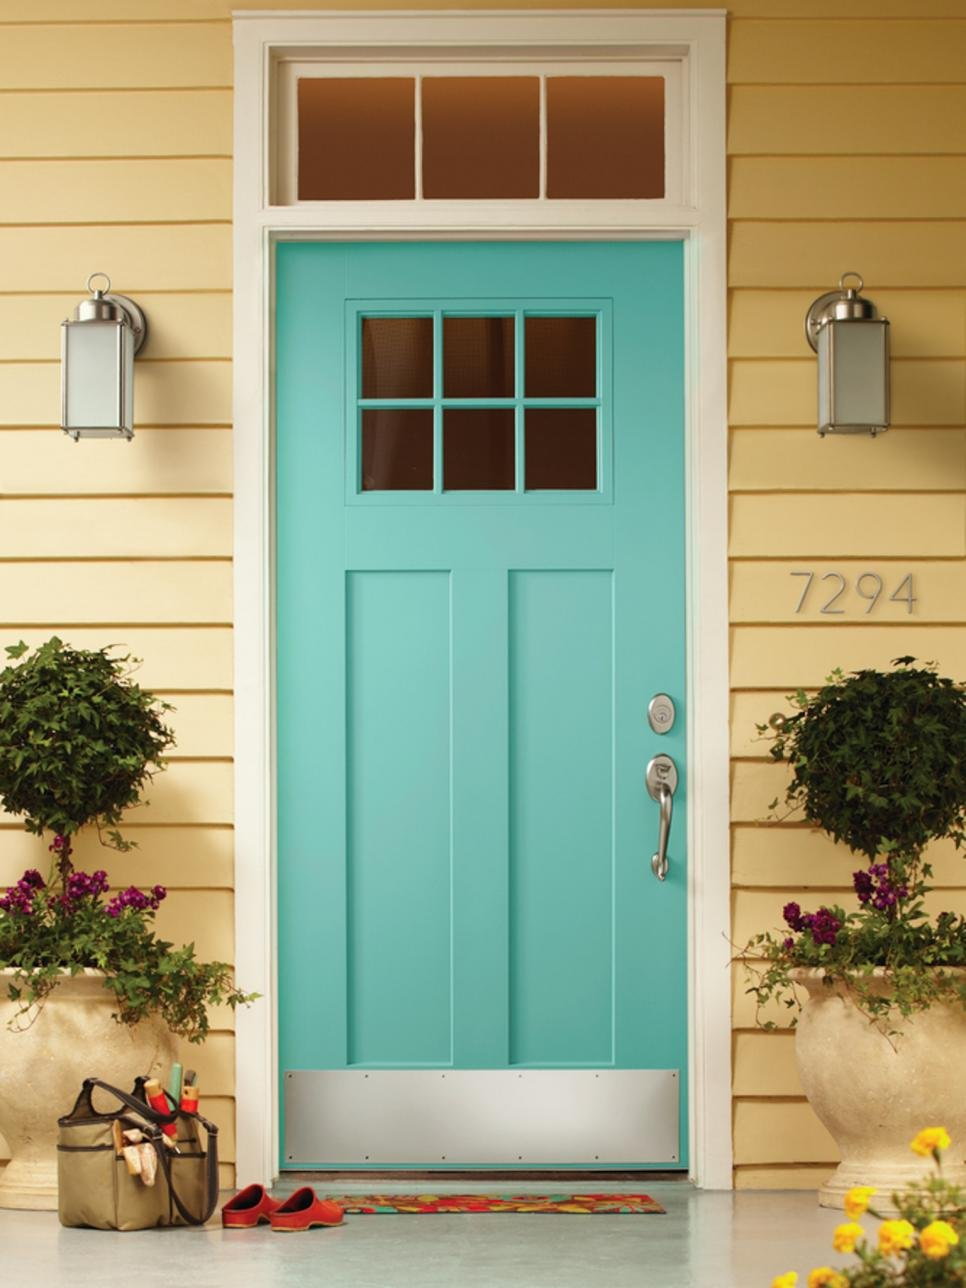 Small Wooden Entry Door Home Idea Collection Change Wooden Entry Doors Design Ideas